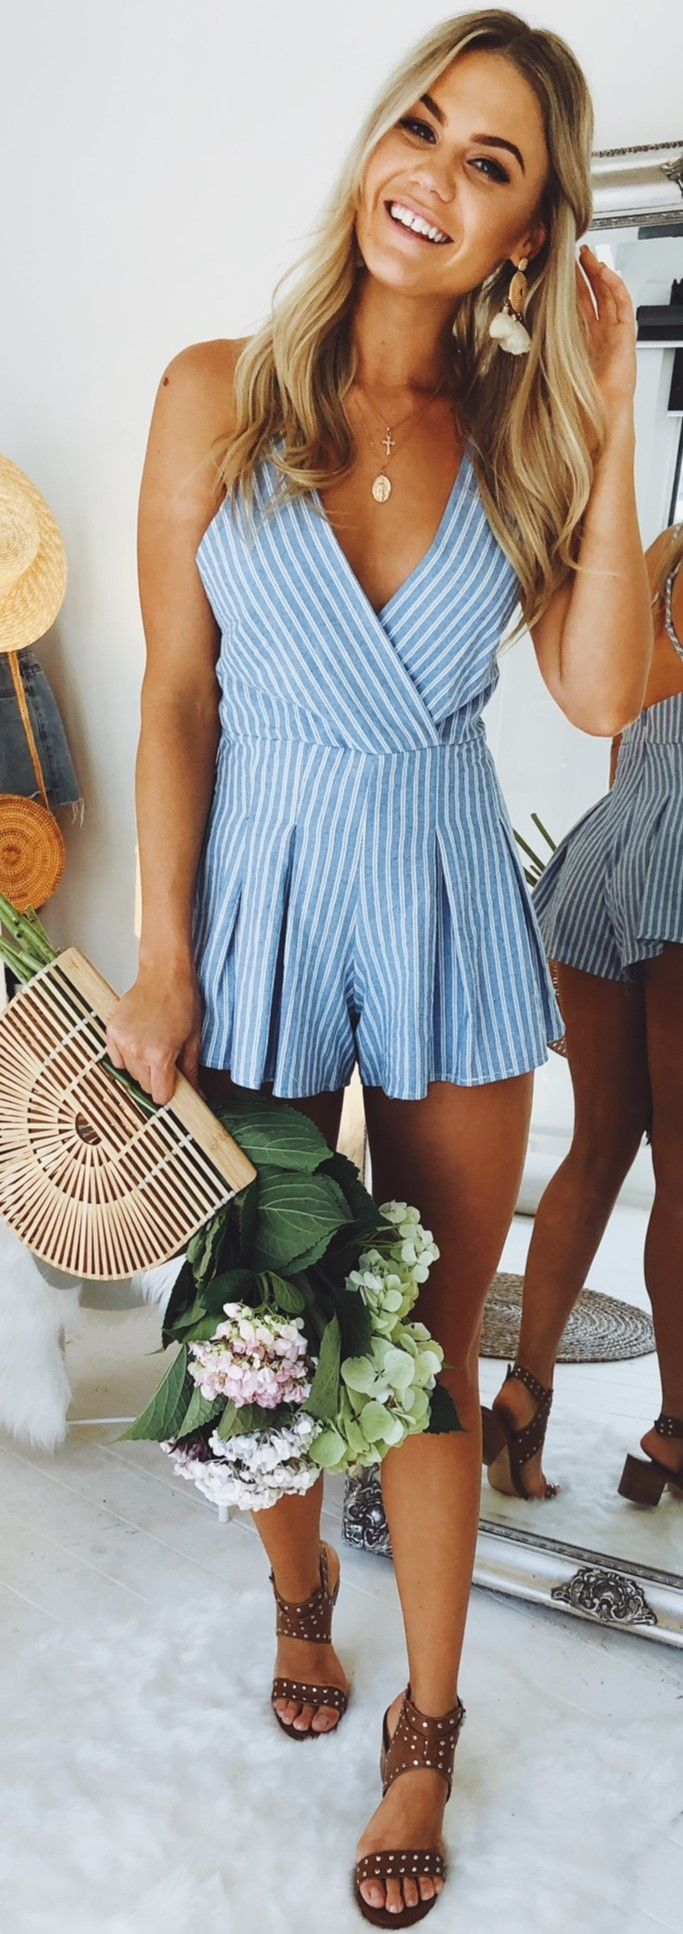 A must have playsuit this season!